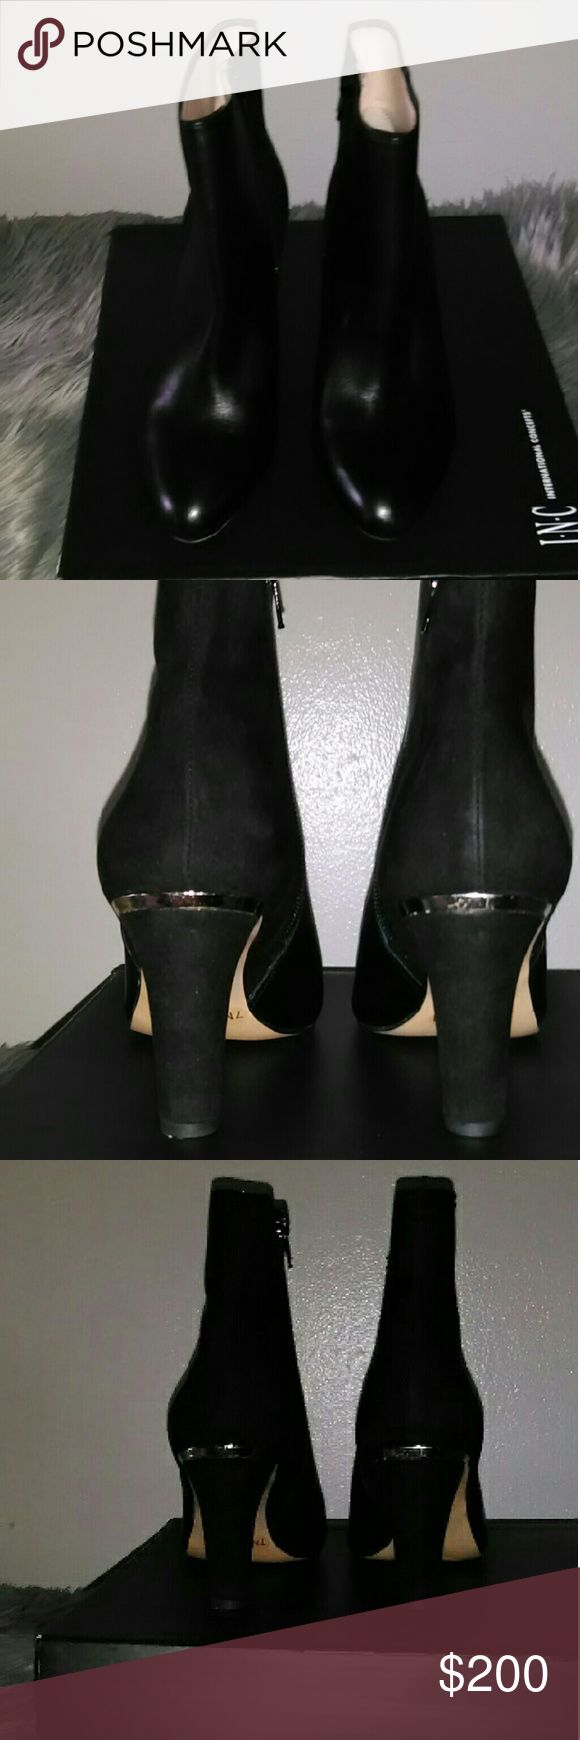 I.N.C leather suede booties Black leather suede booties with gold trimming around the heel brand new never been worn with original box price is firm. INC International Concepts Shoes Ankle Boots & Booties